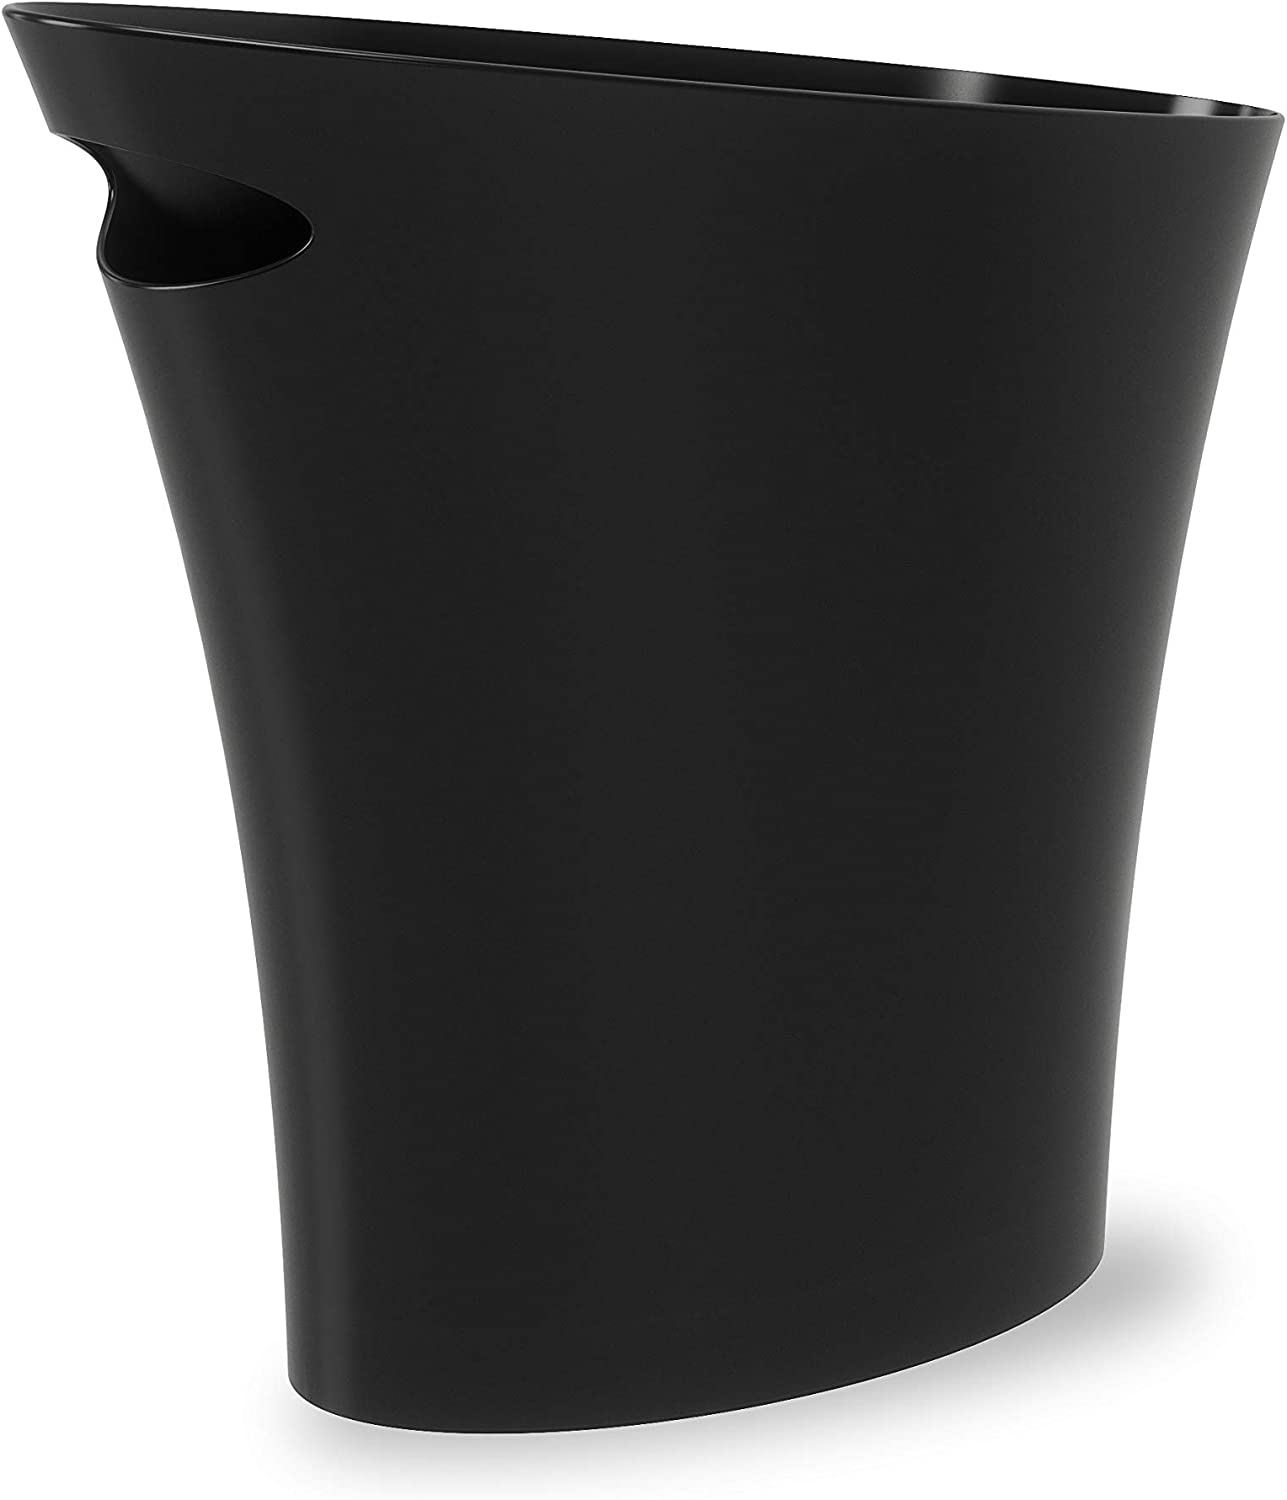 Umbra Skinny Sleek & Stylish Bathroom Trash, Small Garbage Can Wastebasket for Narrow Spaces at Home or Office, 2 Gallon Capacity, Black: Home & Kitchen